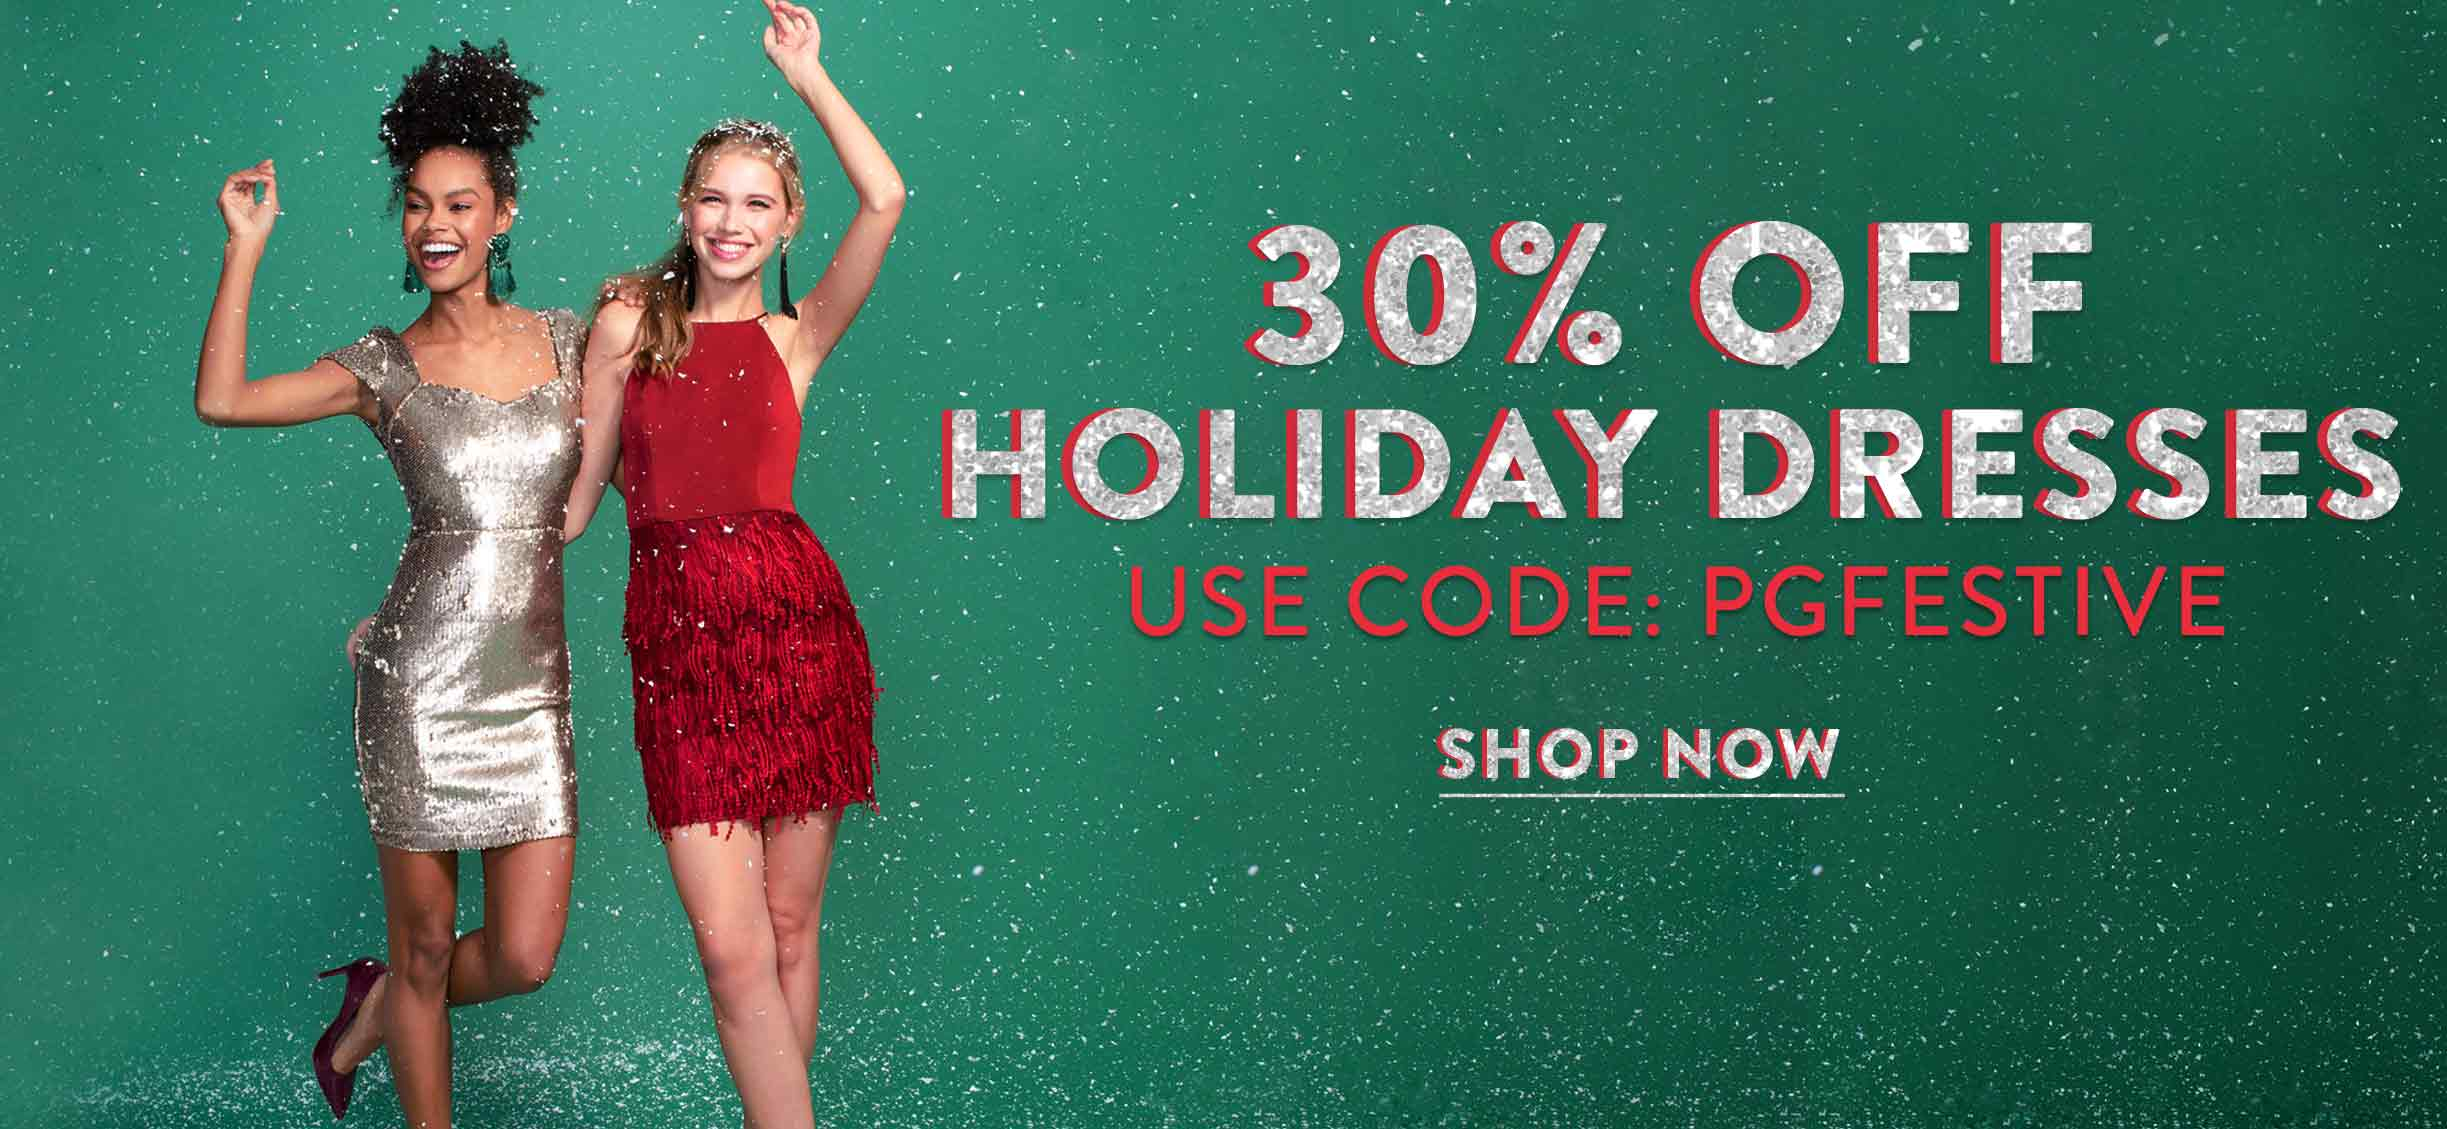 30% off Holiday Dresses